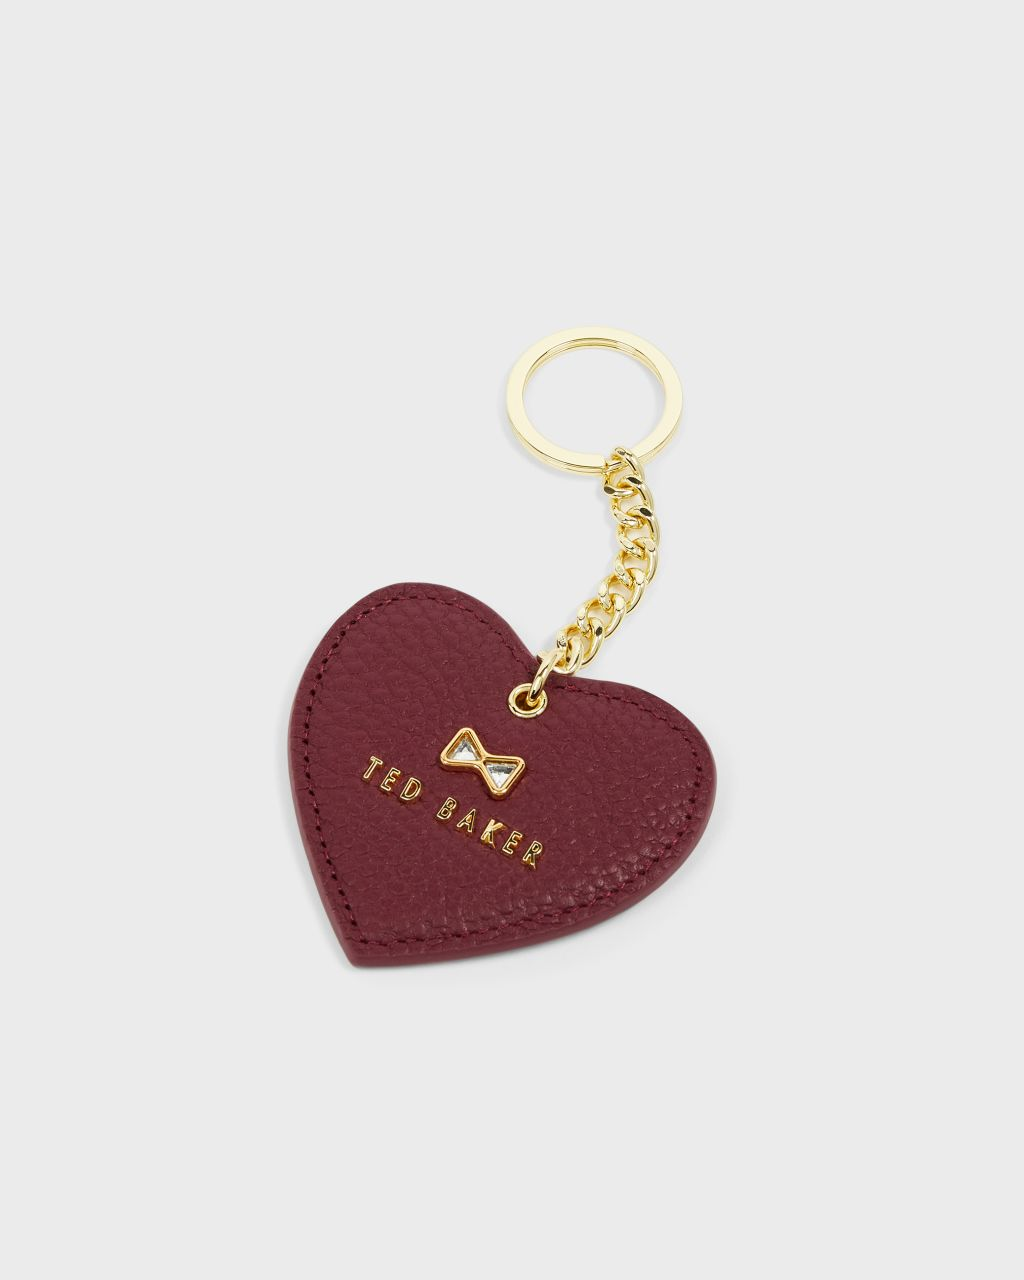 TED BAKER Crystal Bow Detail Heart Key Charm | TED BAKER SALE